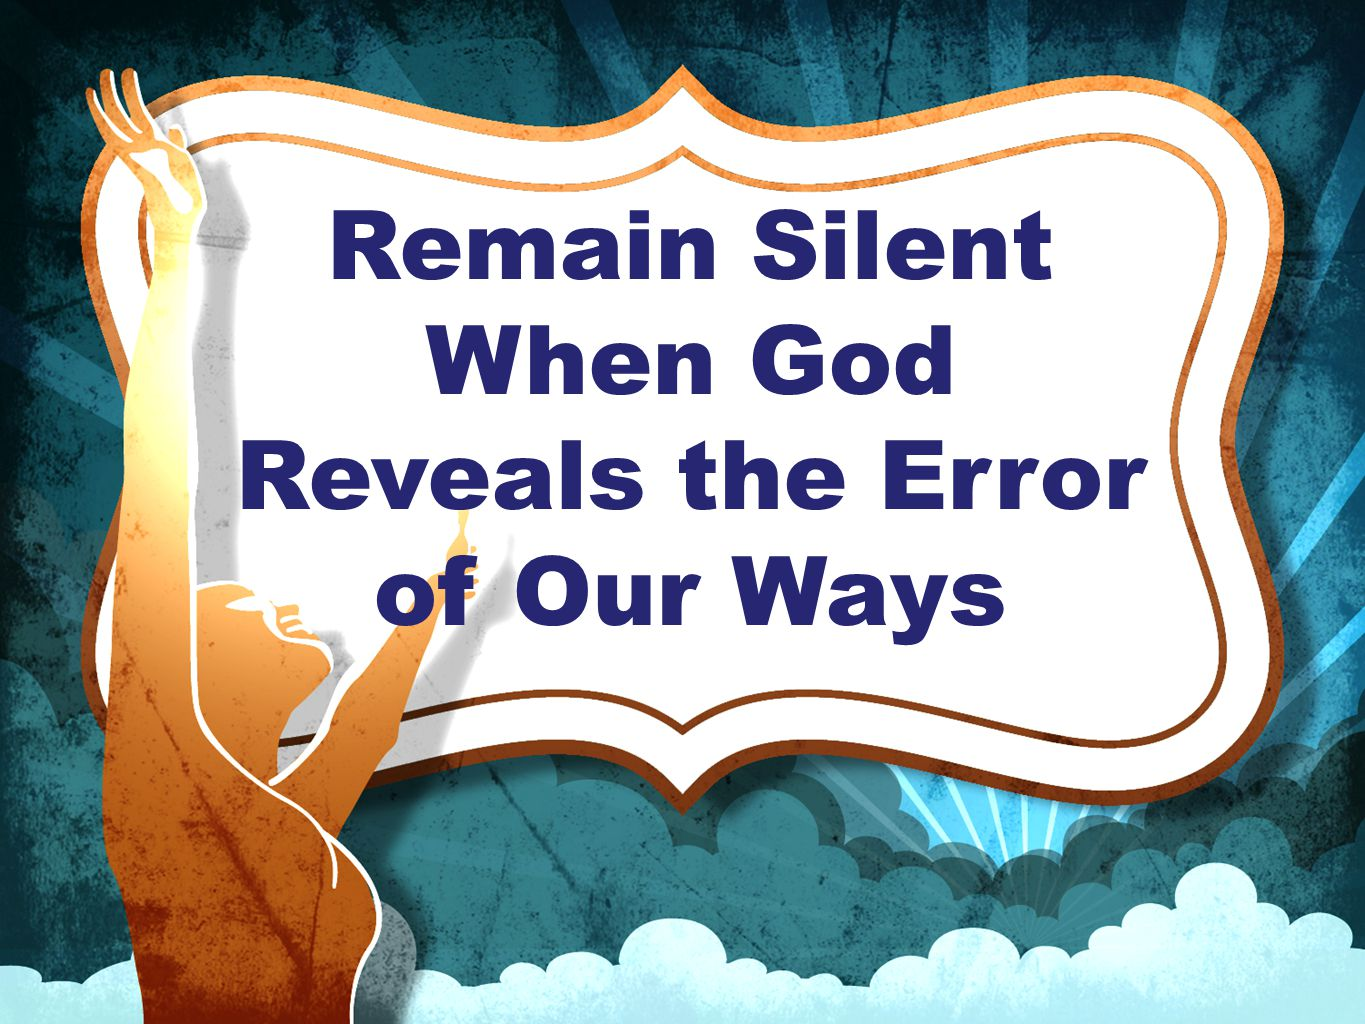 Remain Silent When God Reveals the Error of Our Ways